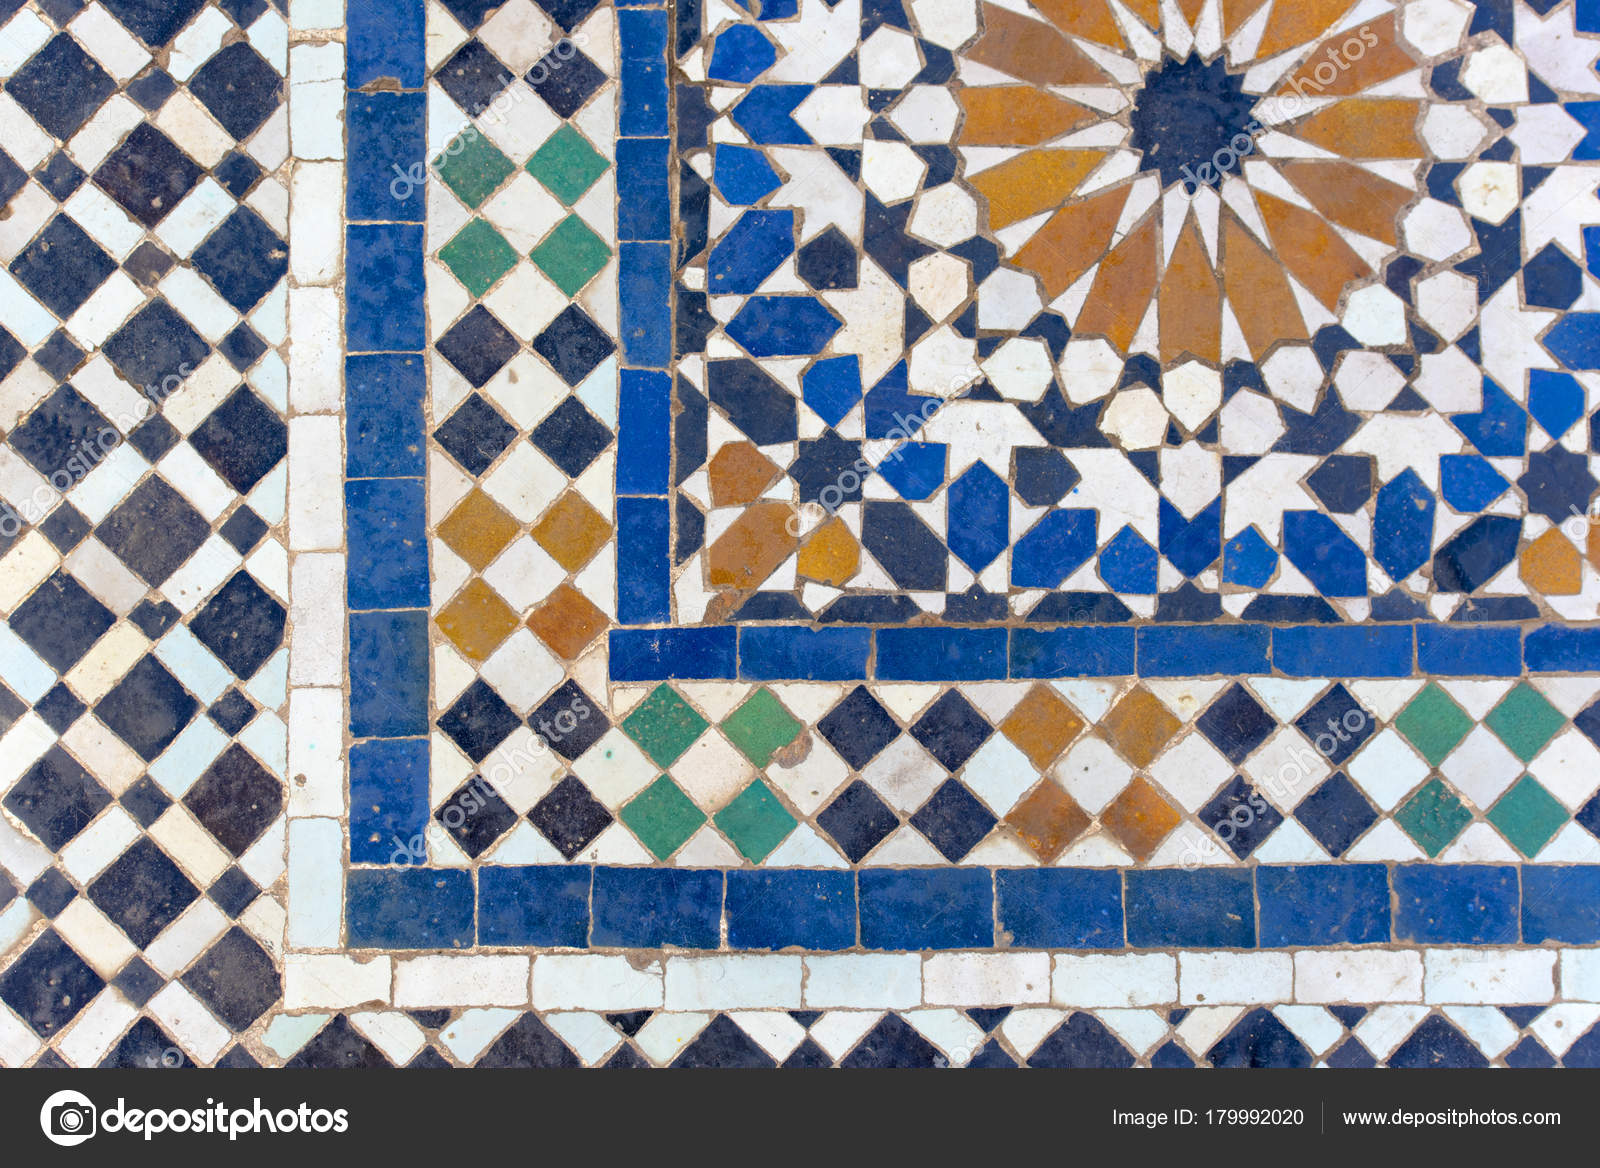 Moroccan Tiles Traditional Arabic Patterns Ceramic Tiles Patterns ...